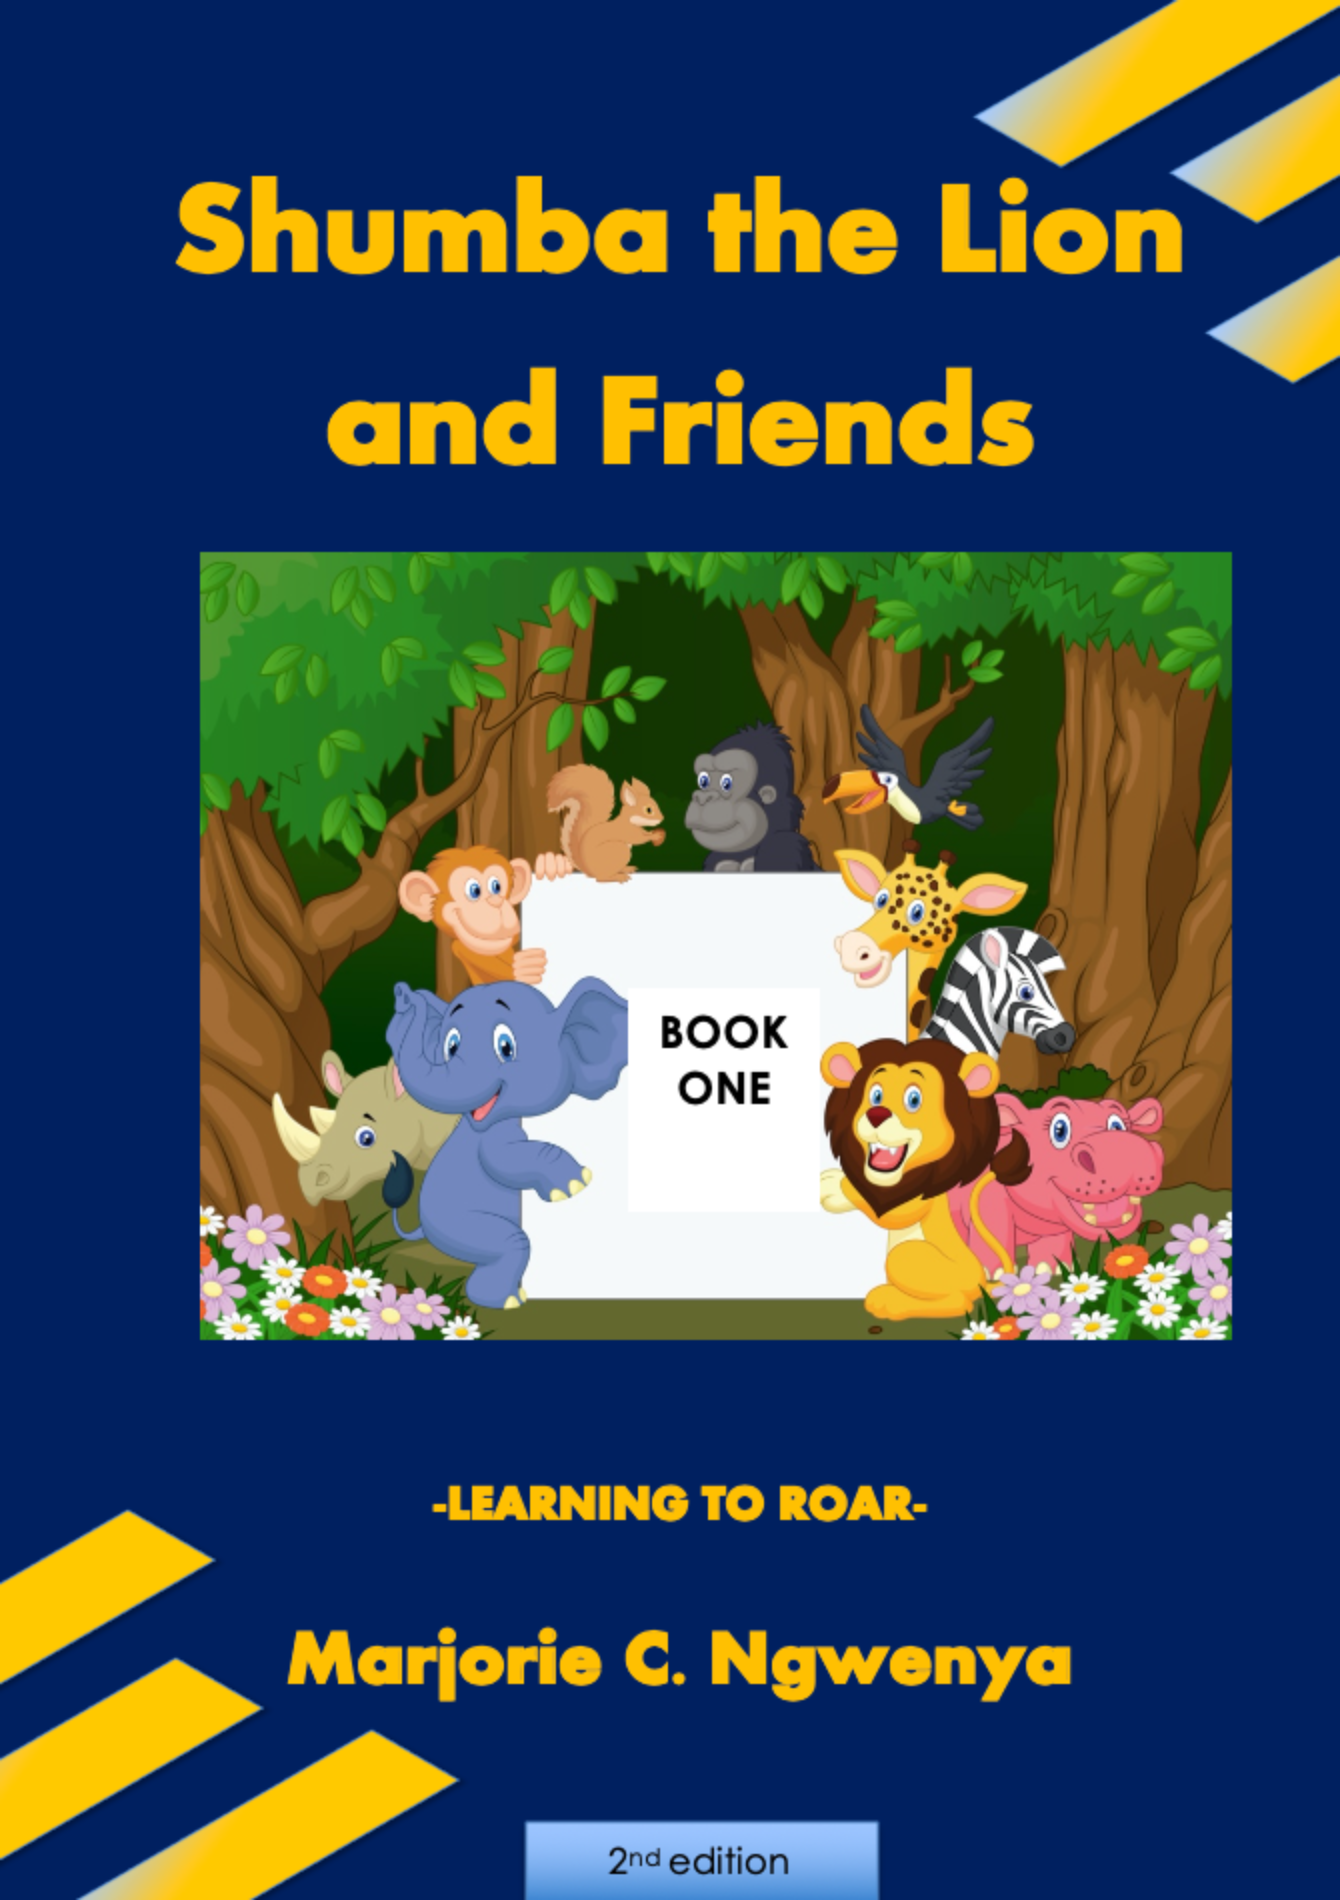 Shumba the Lion and Friends: Book 1 - Learning to Roar